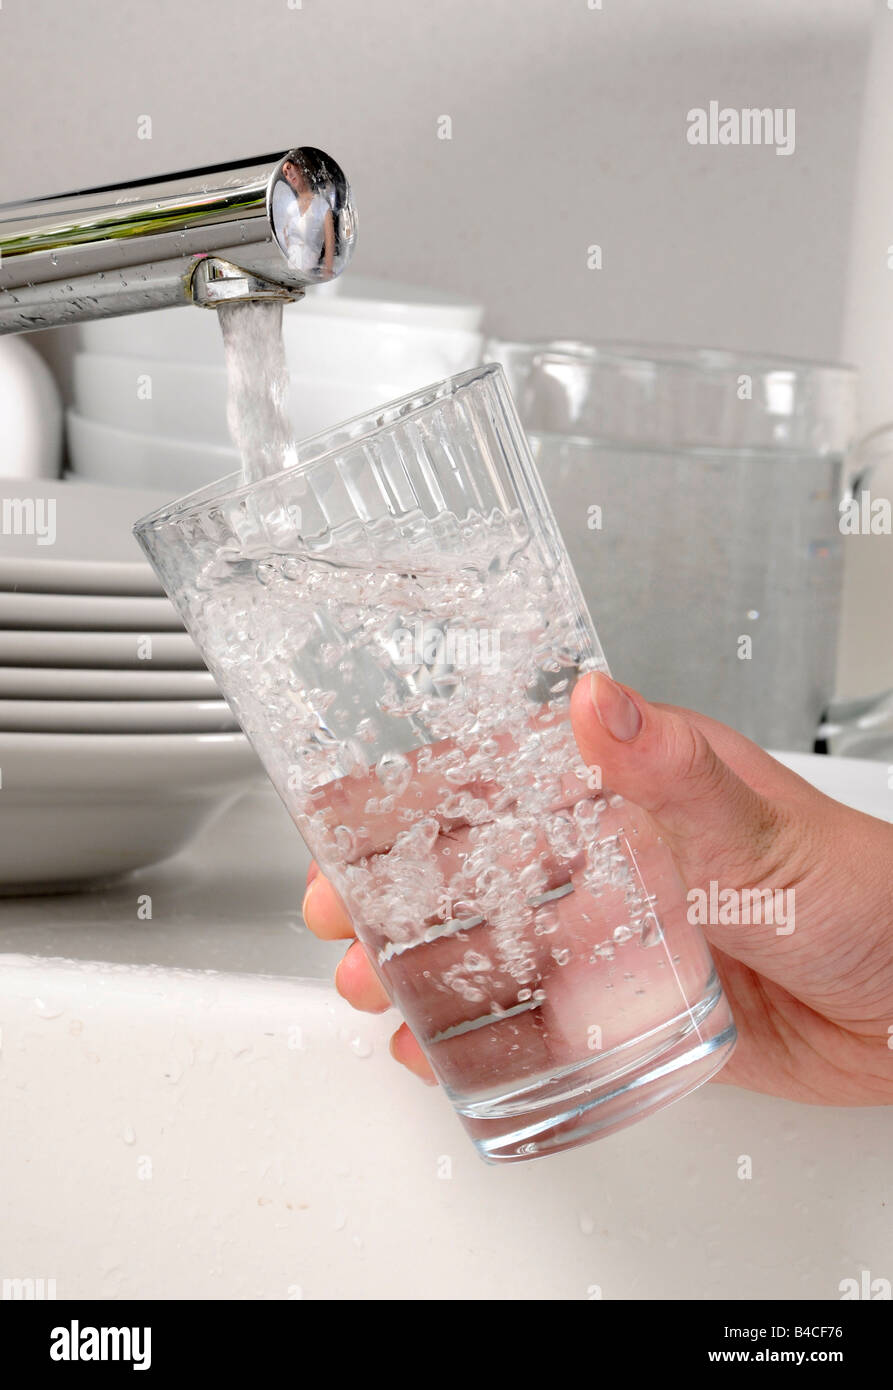 WOMAN FILLING GLASS TUMBLER WITH TAP WATER - Stock Image